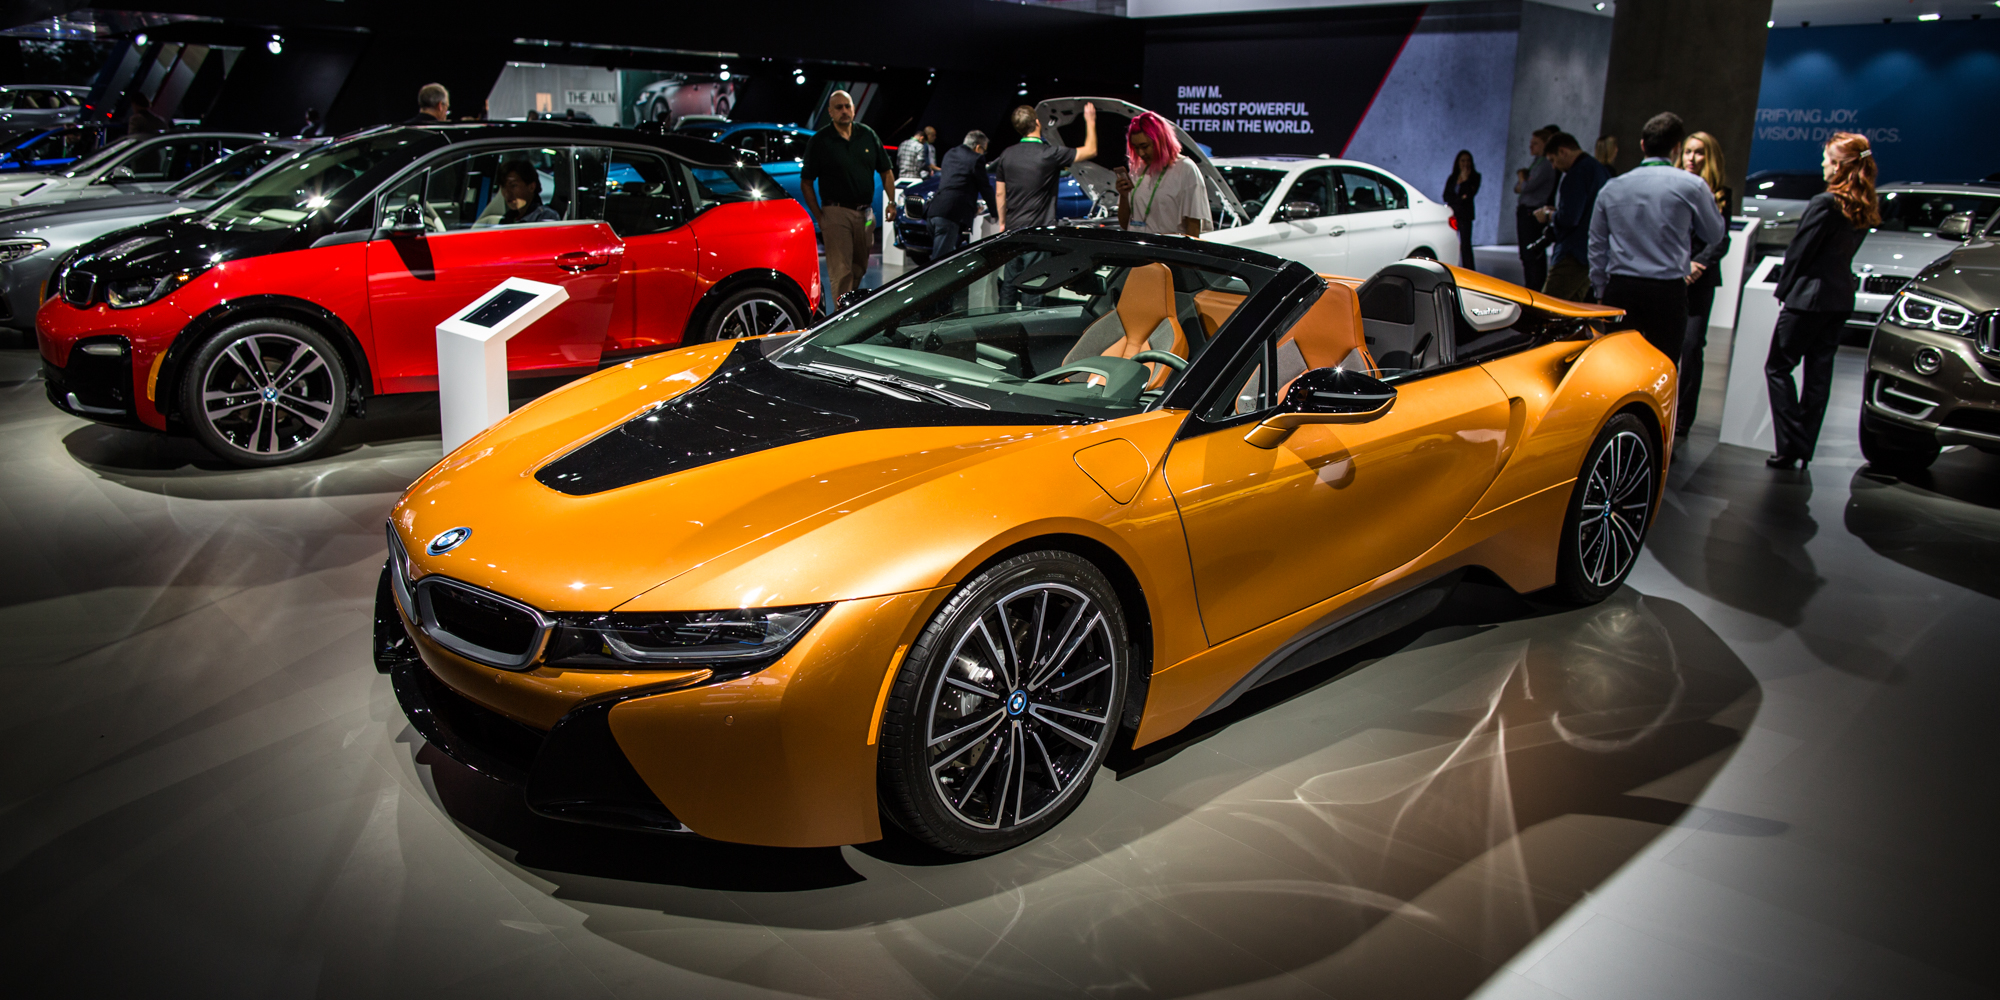 2018 bmw i8 roadster unveiled alongside coupe update photos 1 of 18. Black Bedroom Furniture Sets. Home Design Ideas